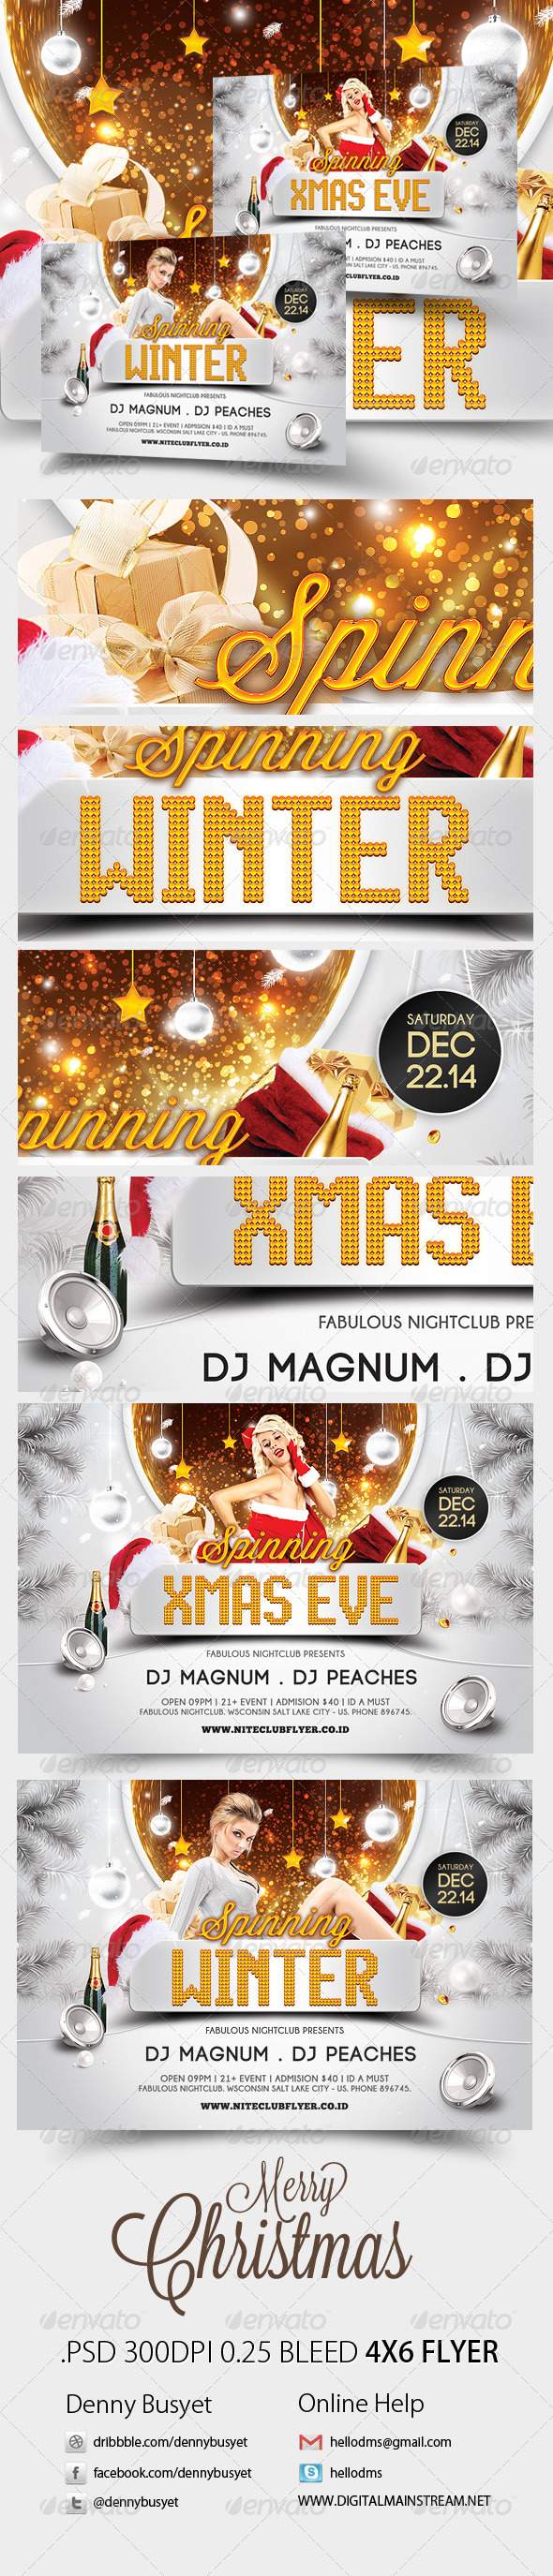 https://0.s3.envato.com/files/40518568/Spinning%20Winter%20And%20Xmas%20Party%20Flyer%20Preview.jpg